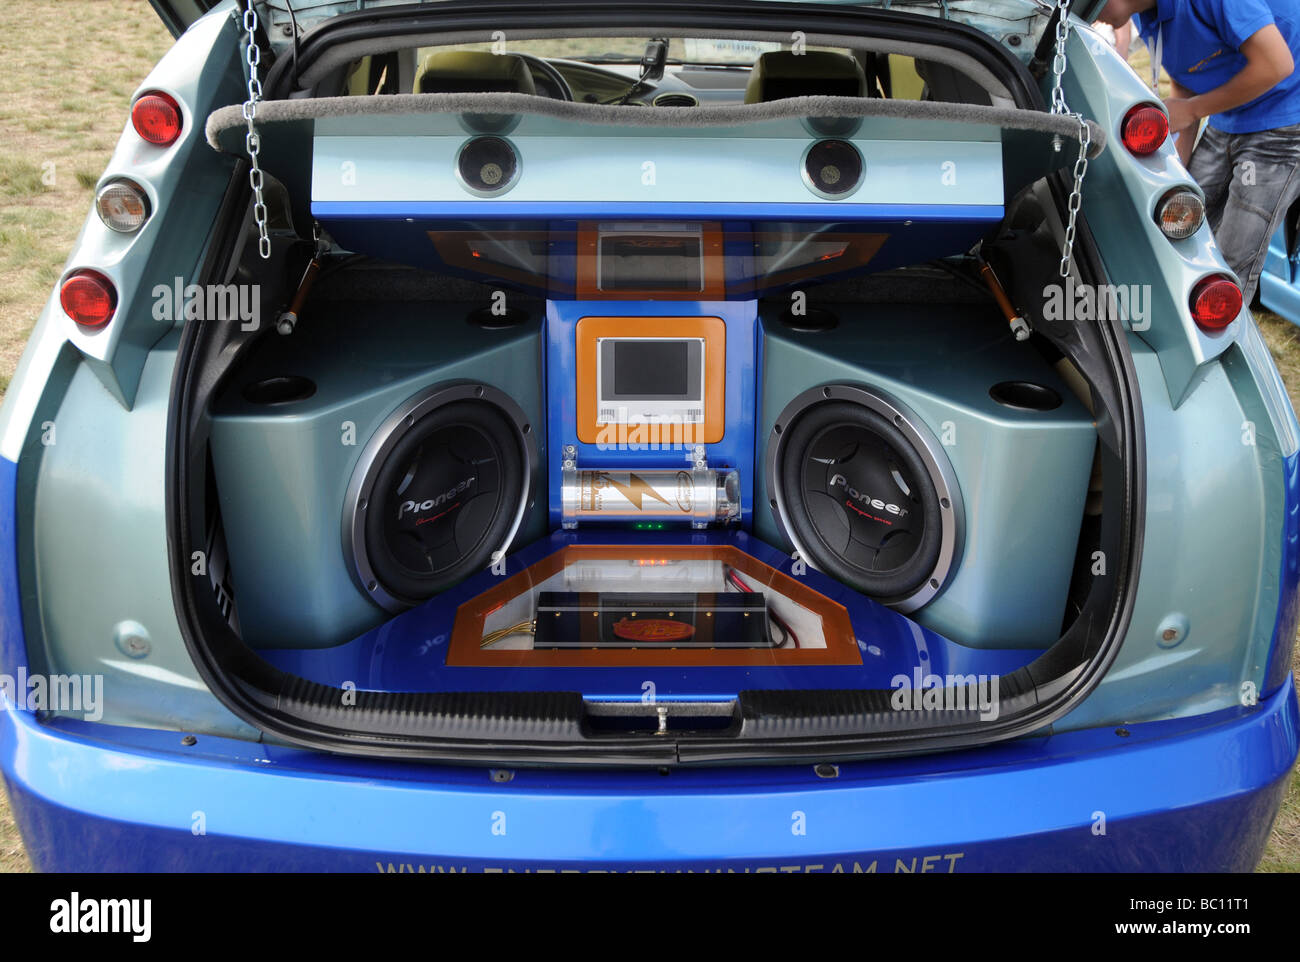 modified ford focus during car audio systems and tuning. Black Bedroom Furniture Sets. Home Design Ideas